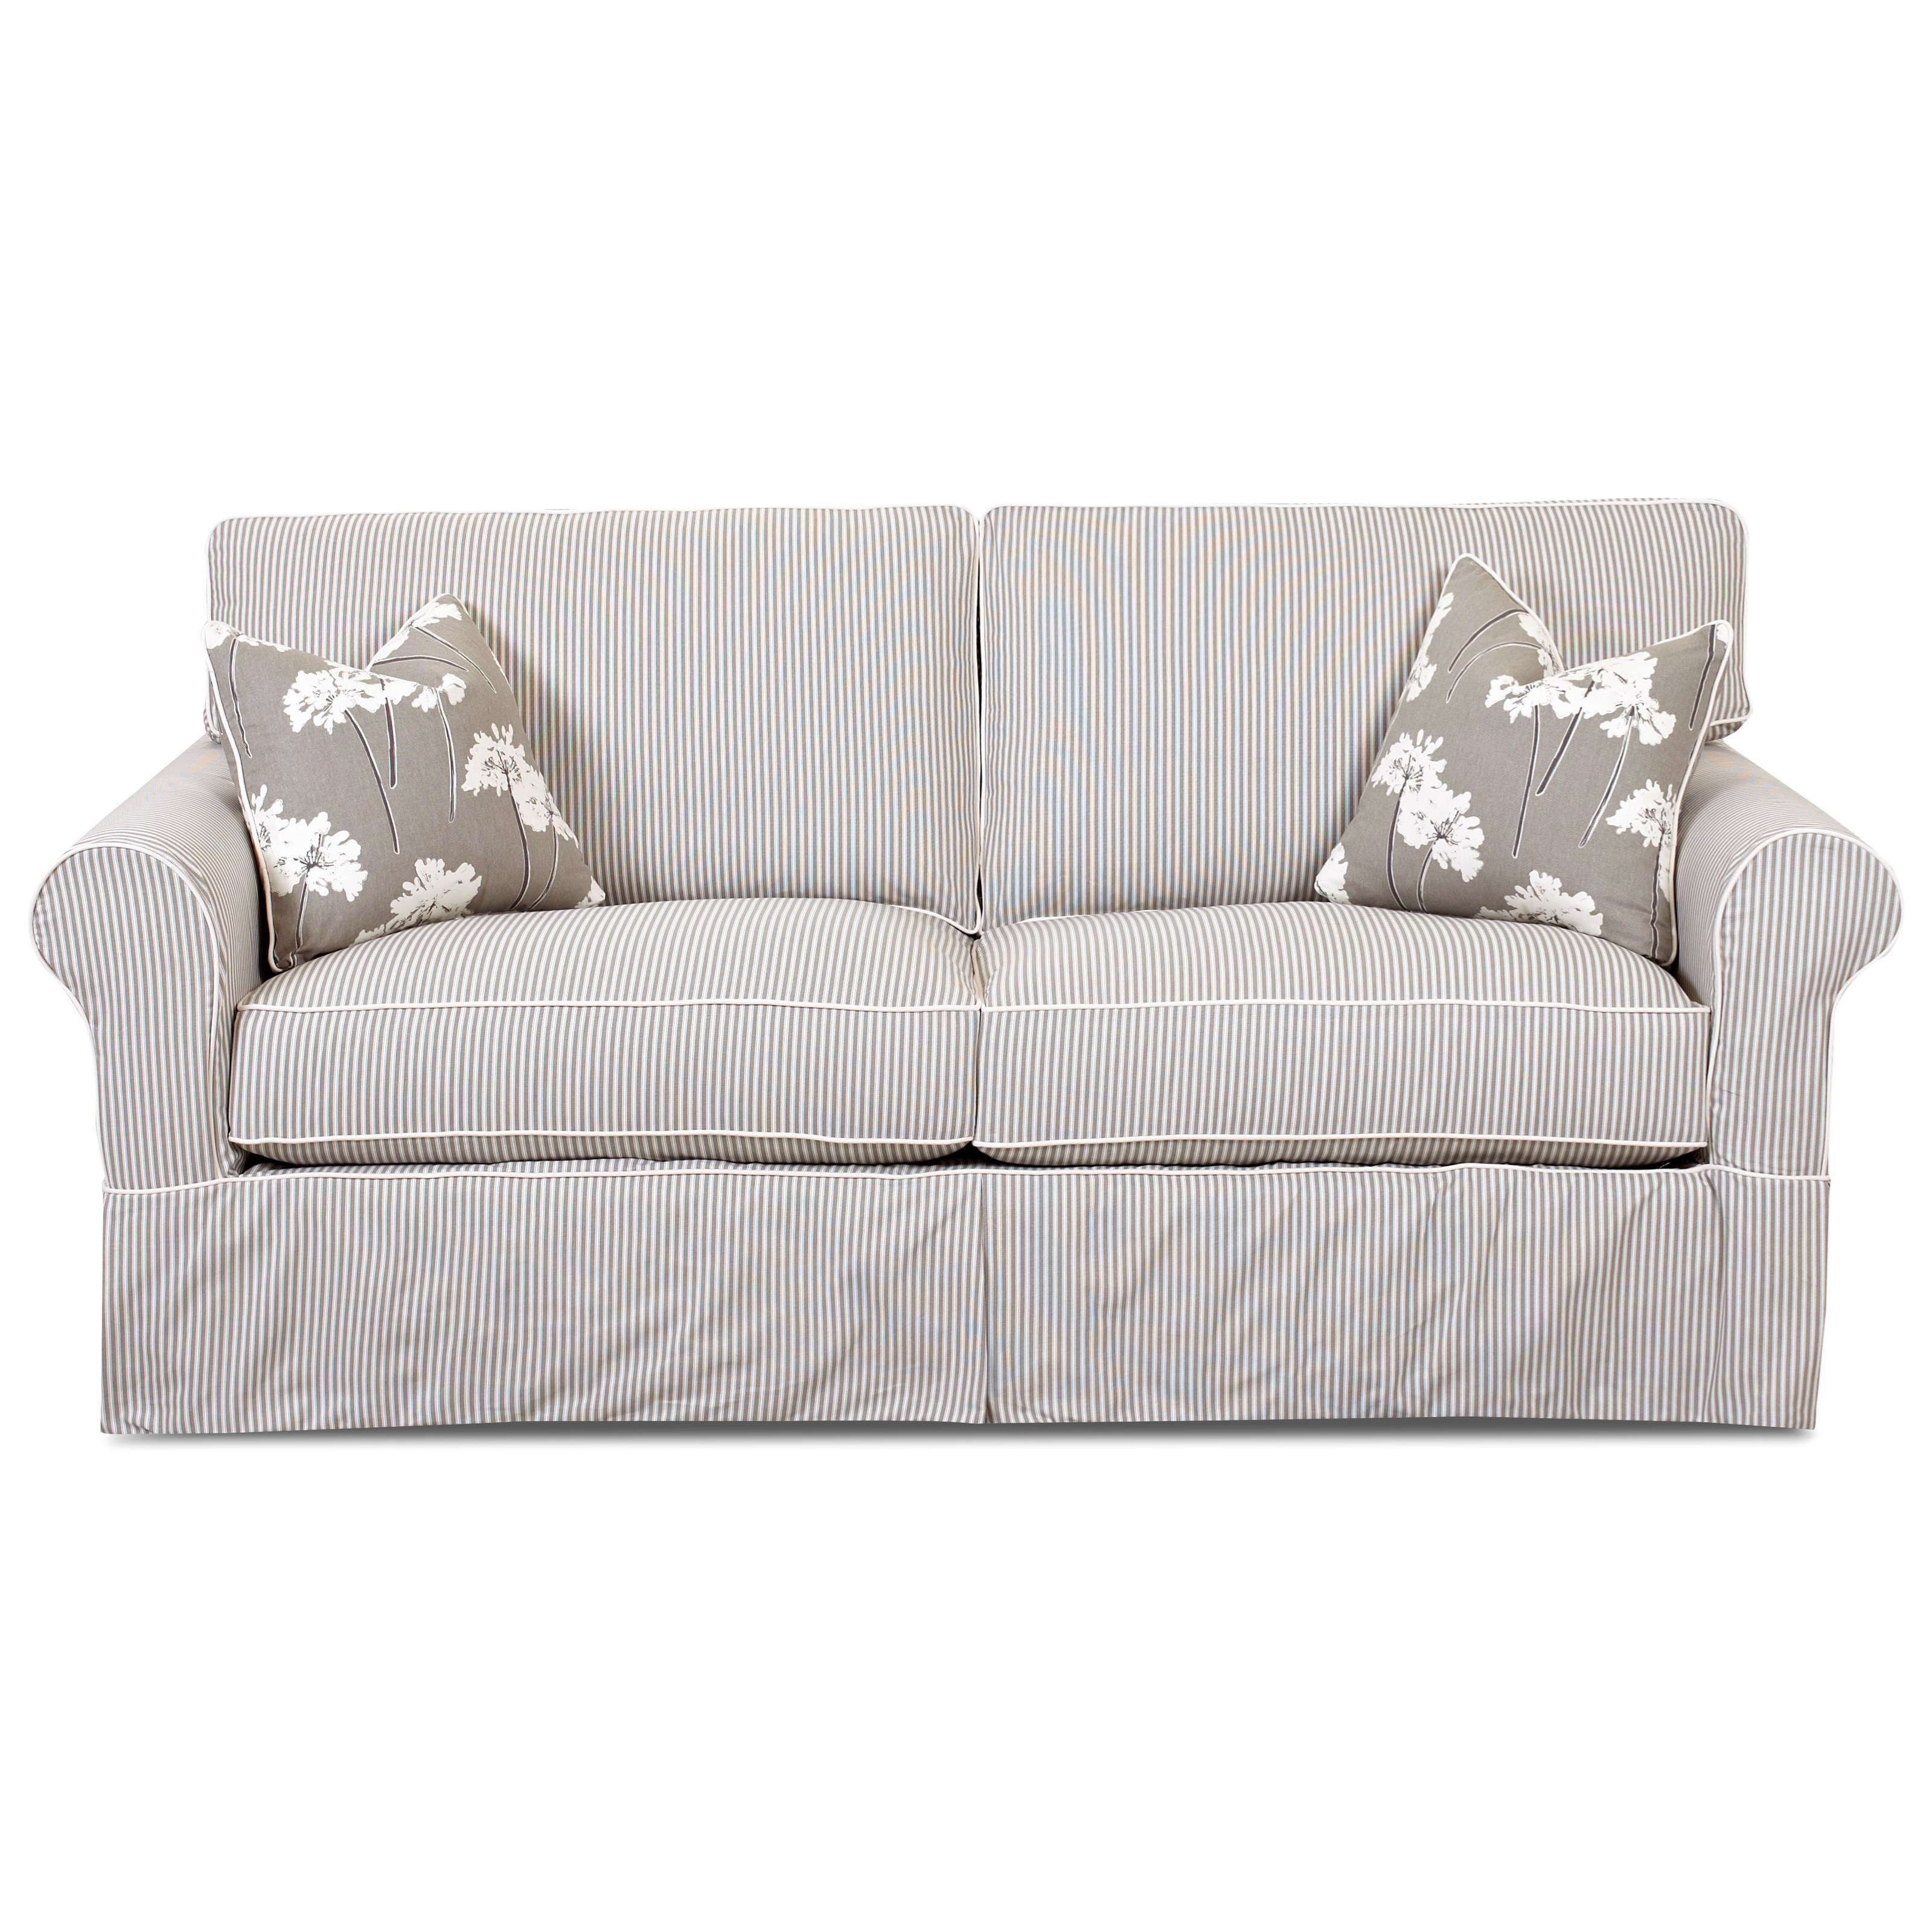 Traditional Enso Memory Foam Regular Sleeper Sofa with Rolled Arms and Skirted Base